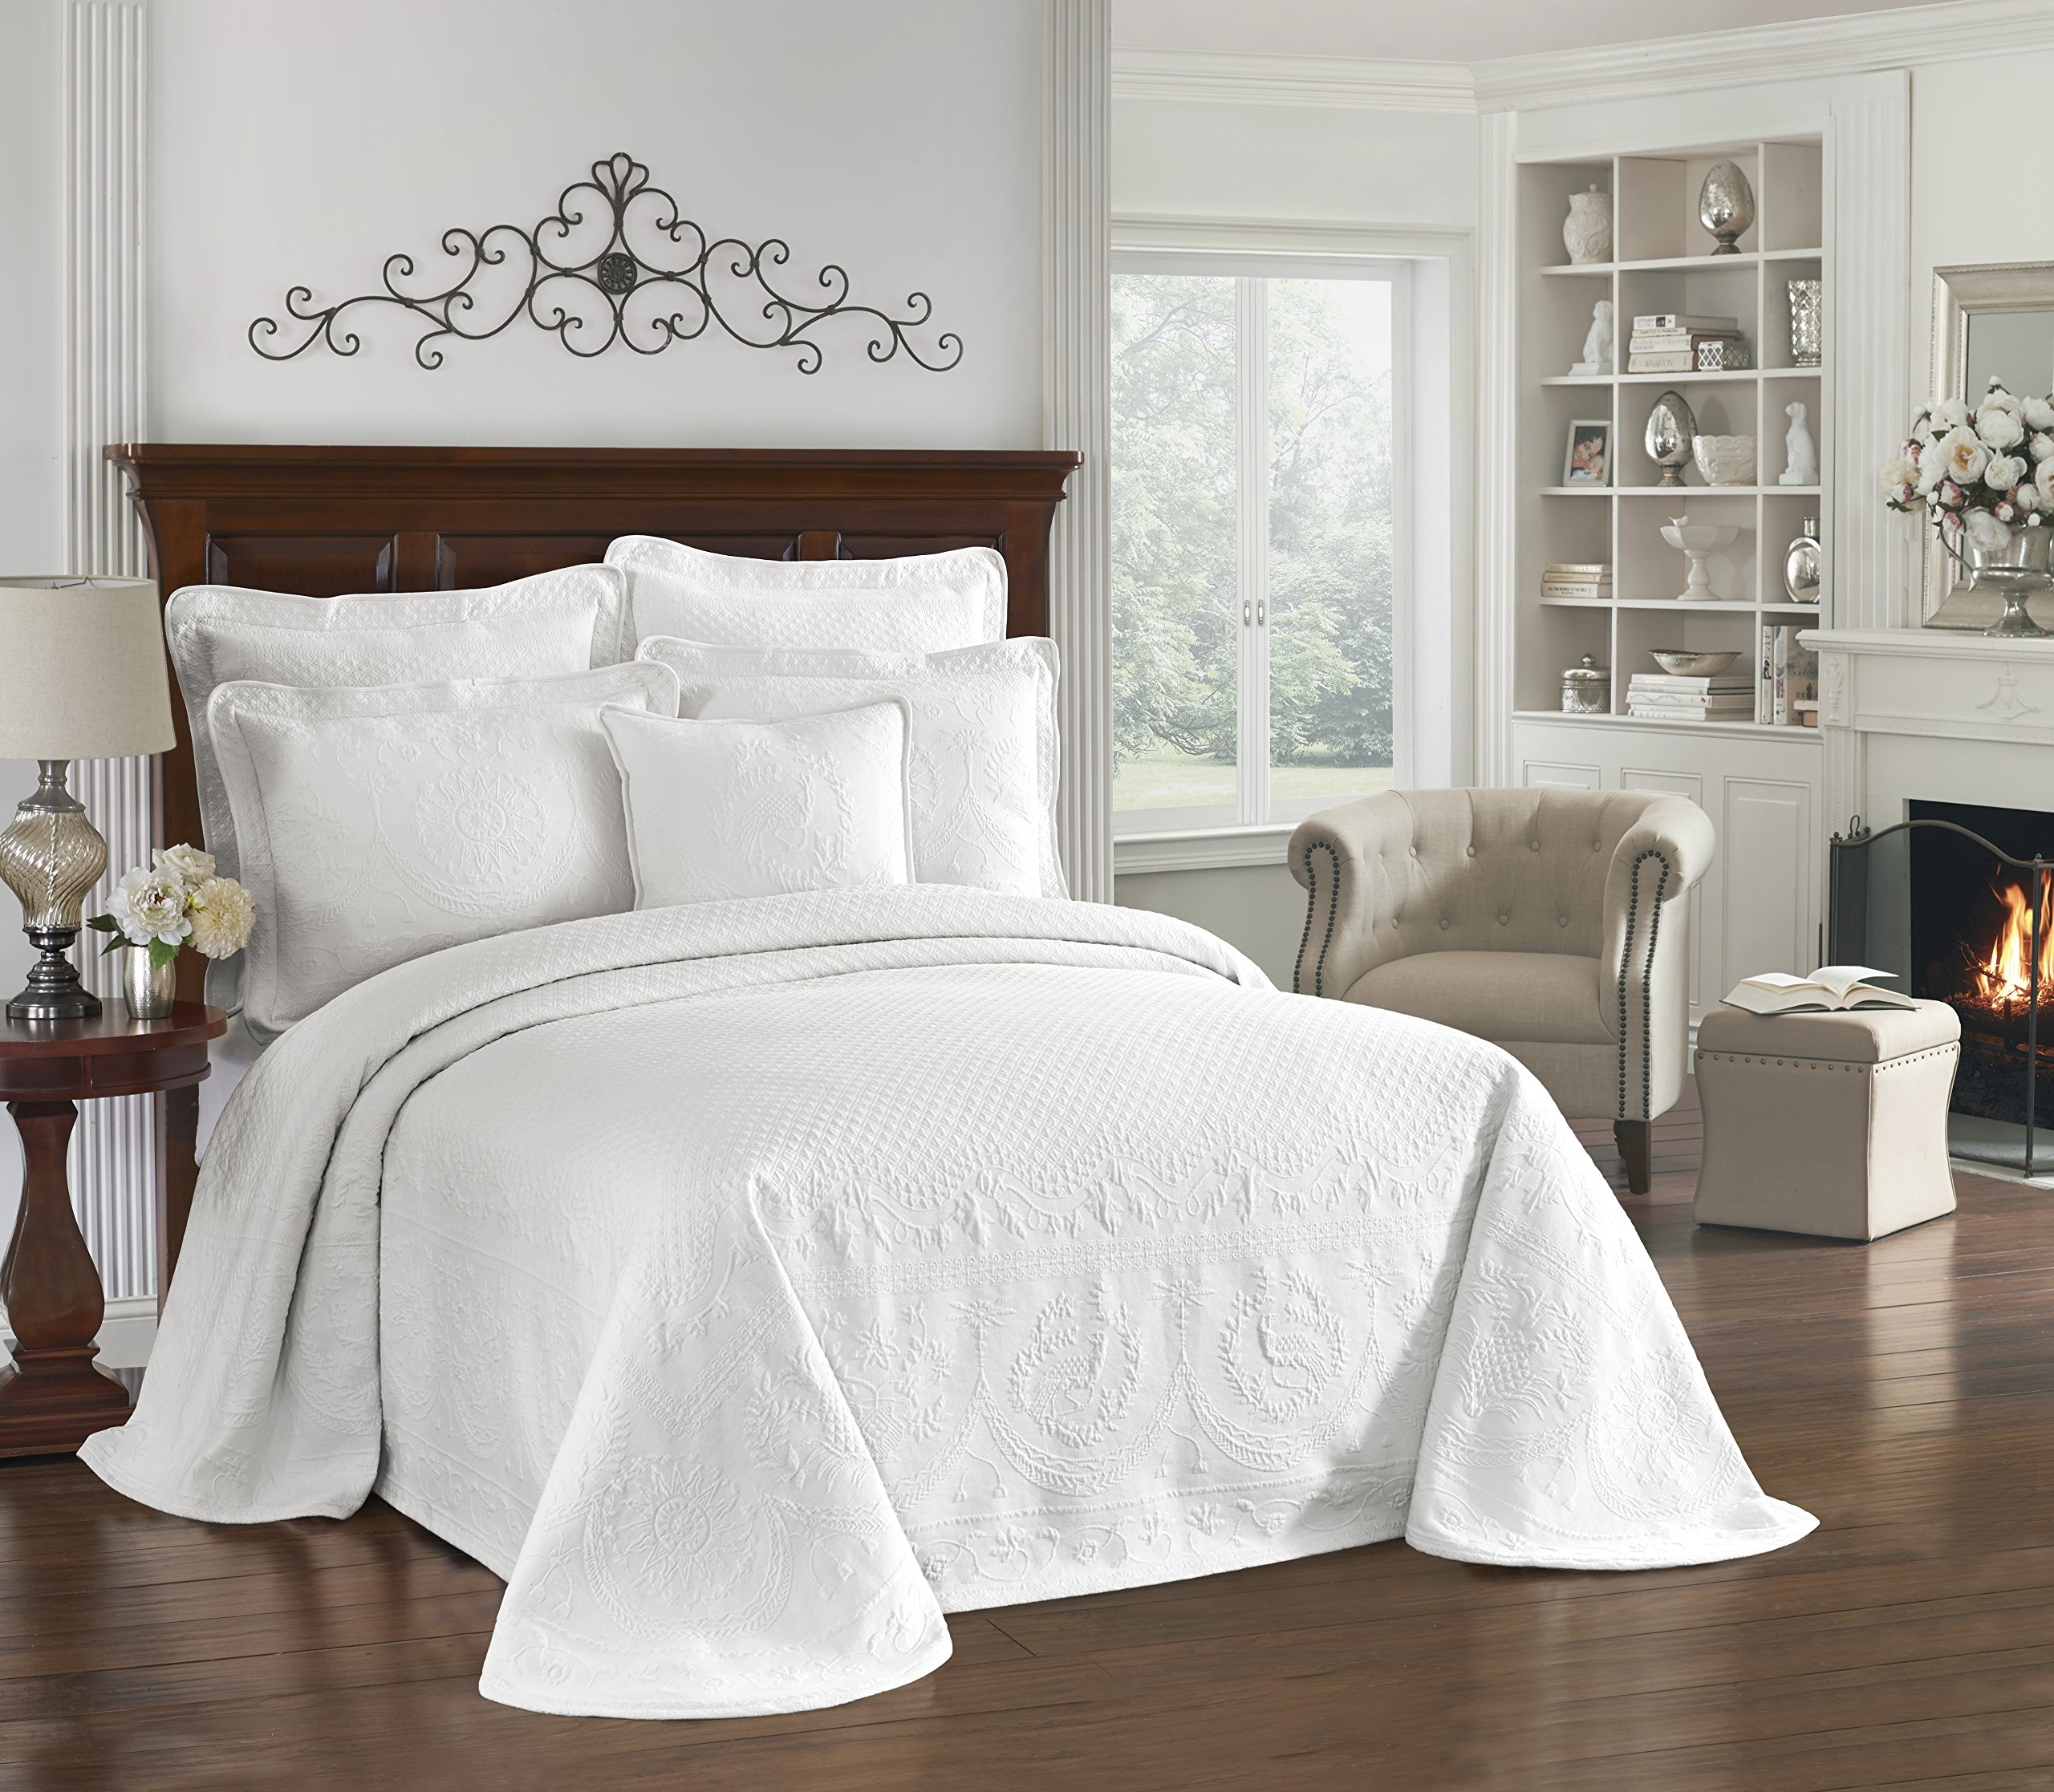 Historic Charleston 13989BEDDQUEWHI King Charles 120-Inch by 102-Inch Matelasse Queen Bedspread, White